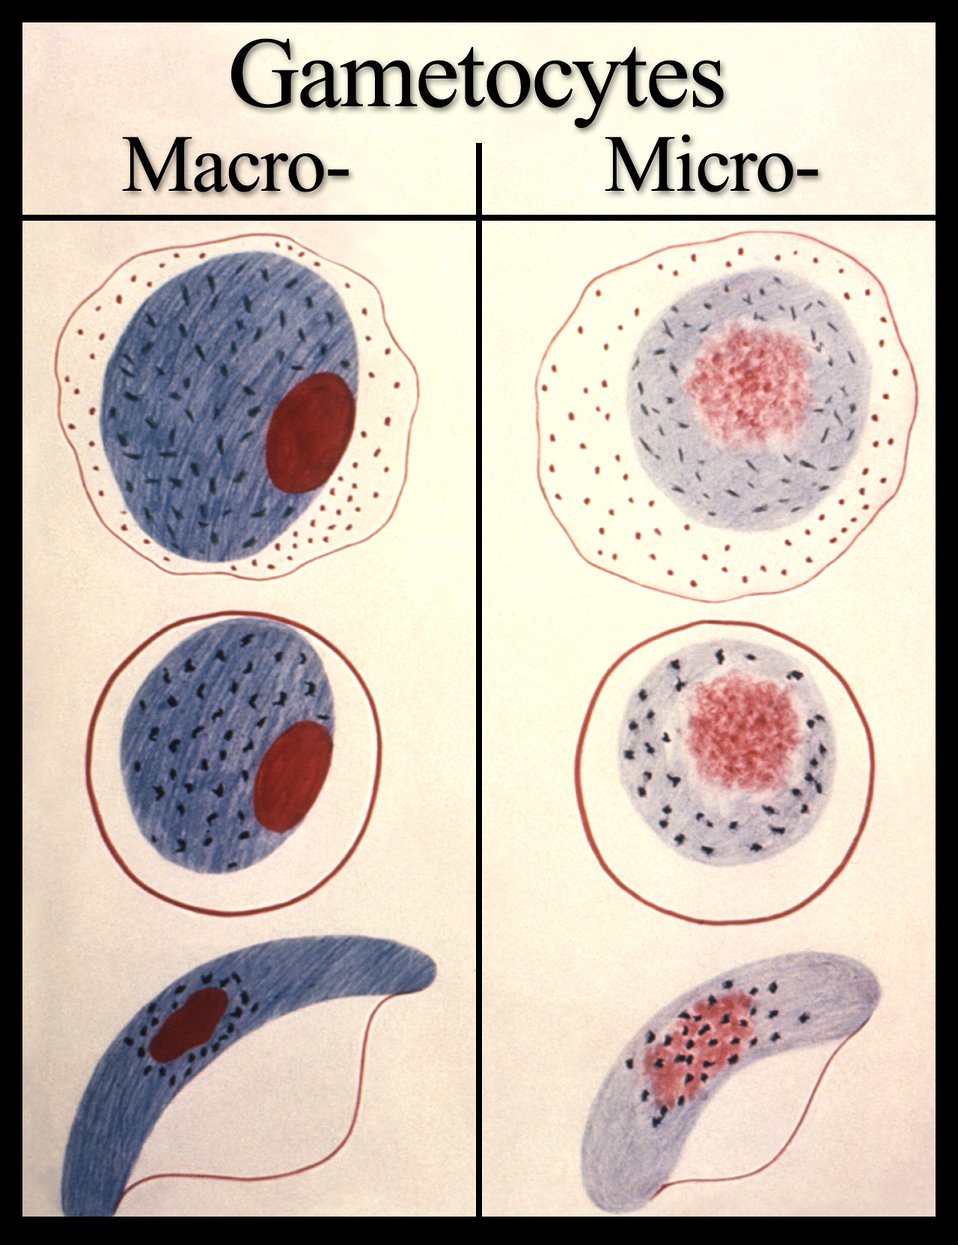 As a gametocyte, i.e., sexual erythrocytic stage, these are the various forms displayed by the developing malarial parasite.